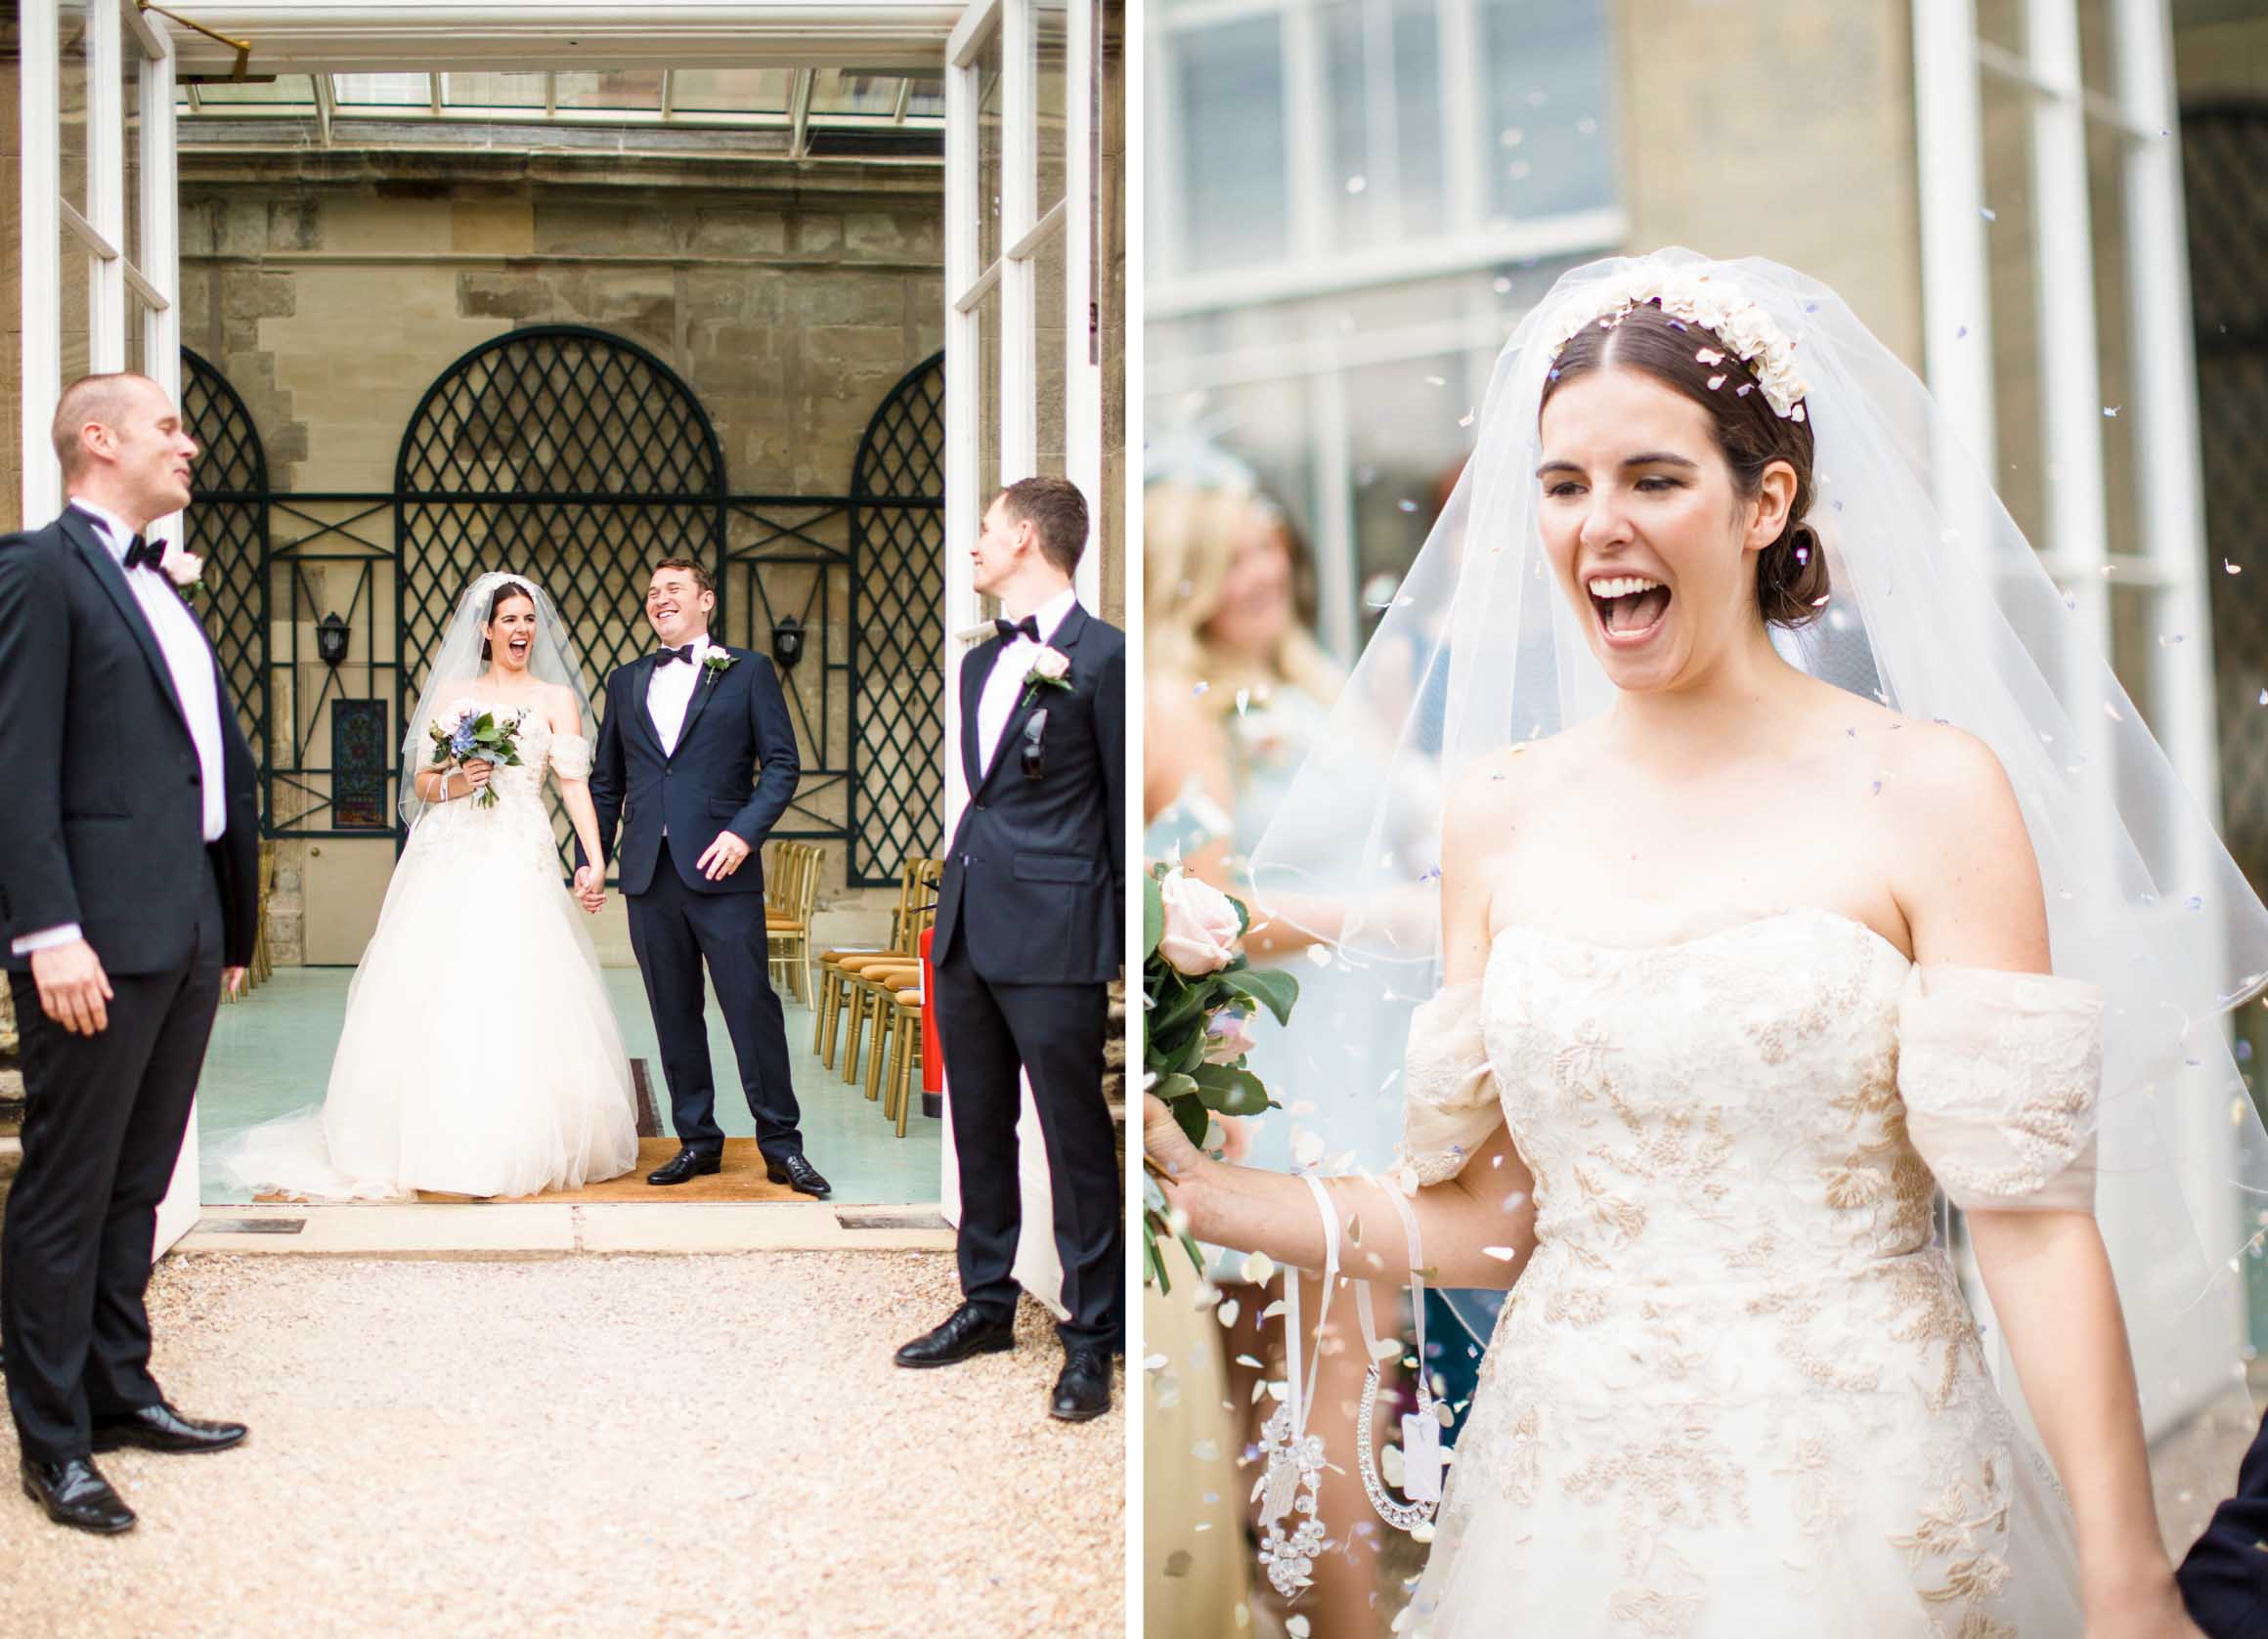 Amy O'Boyle Photography- Destination & UK Fine Art Film Wedding Photographer- Stoneleigh Abbey Wedding 11.jpg